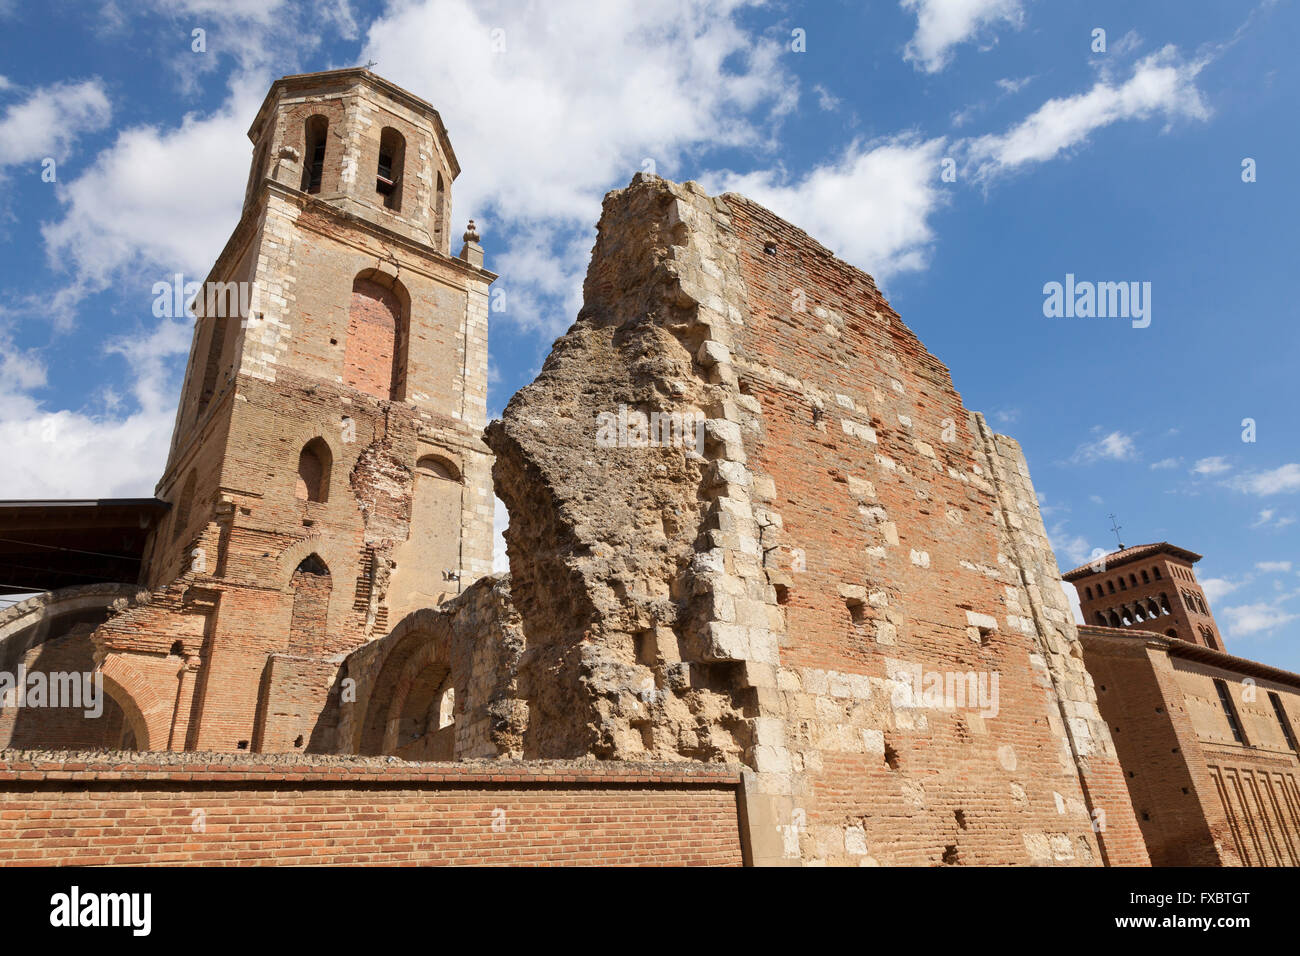 Sahagún, Spain: Bell tower of the Monastery of San Benito and the ruins of the Monastery of San Facundo and - Stock Image